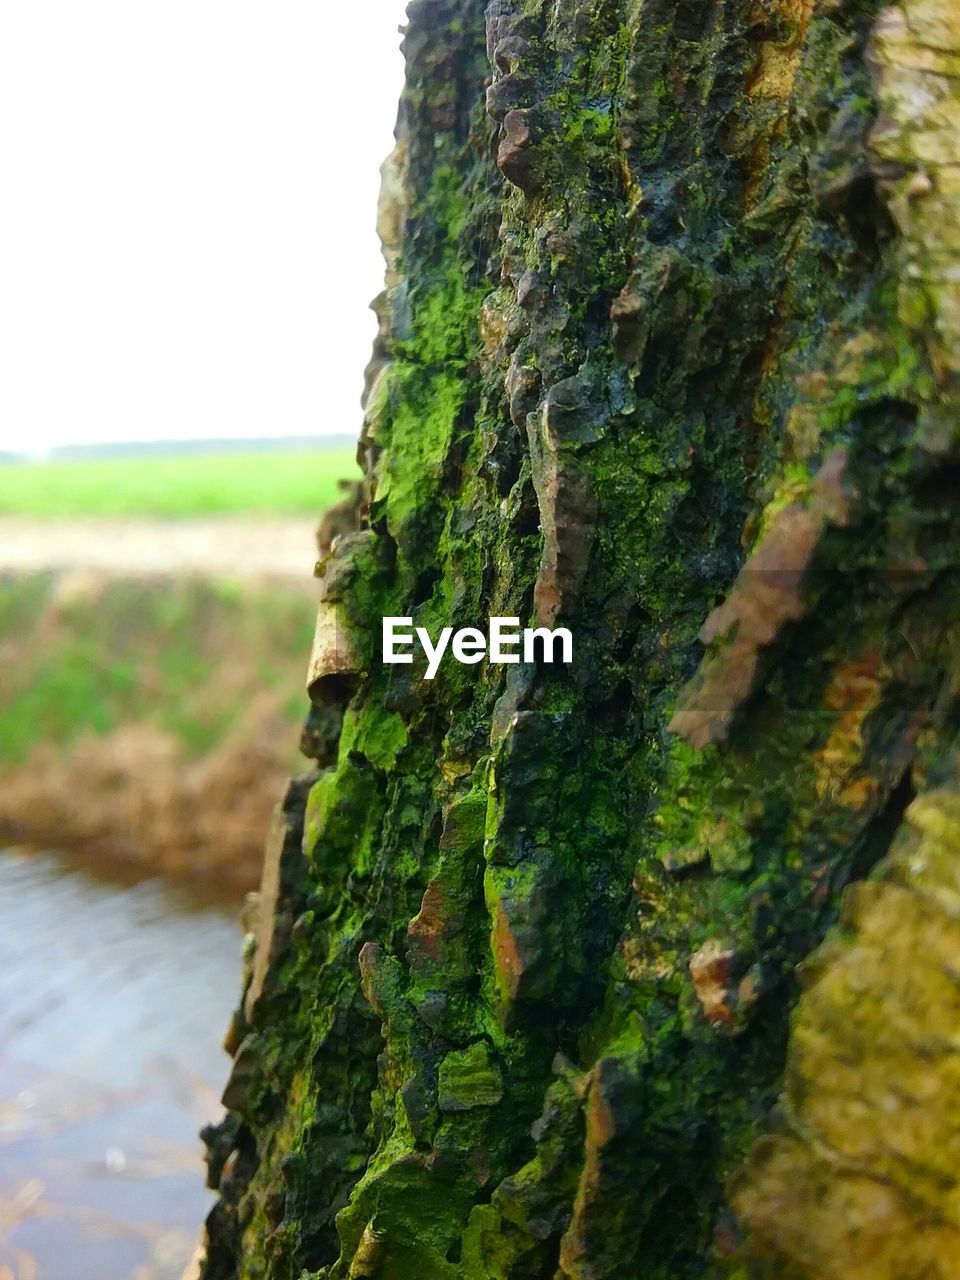 moss, tree trunk, nature, day, rough, green color, tree, lichen, focus on foreground, no people, outdoors, close-up, textured, growth, beauty in nature, sky